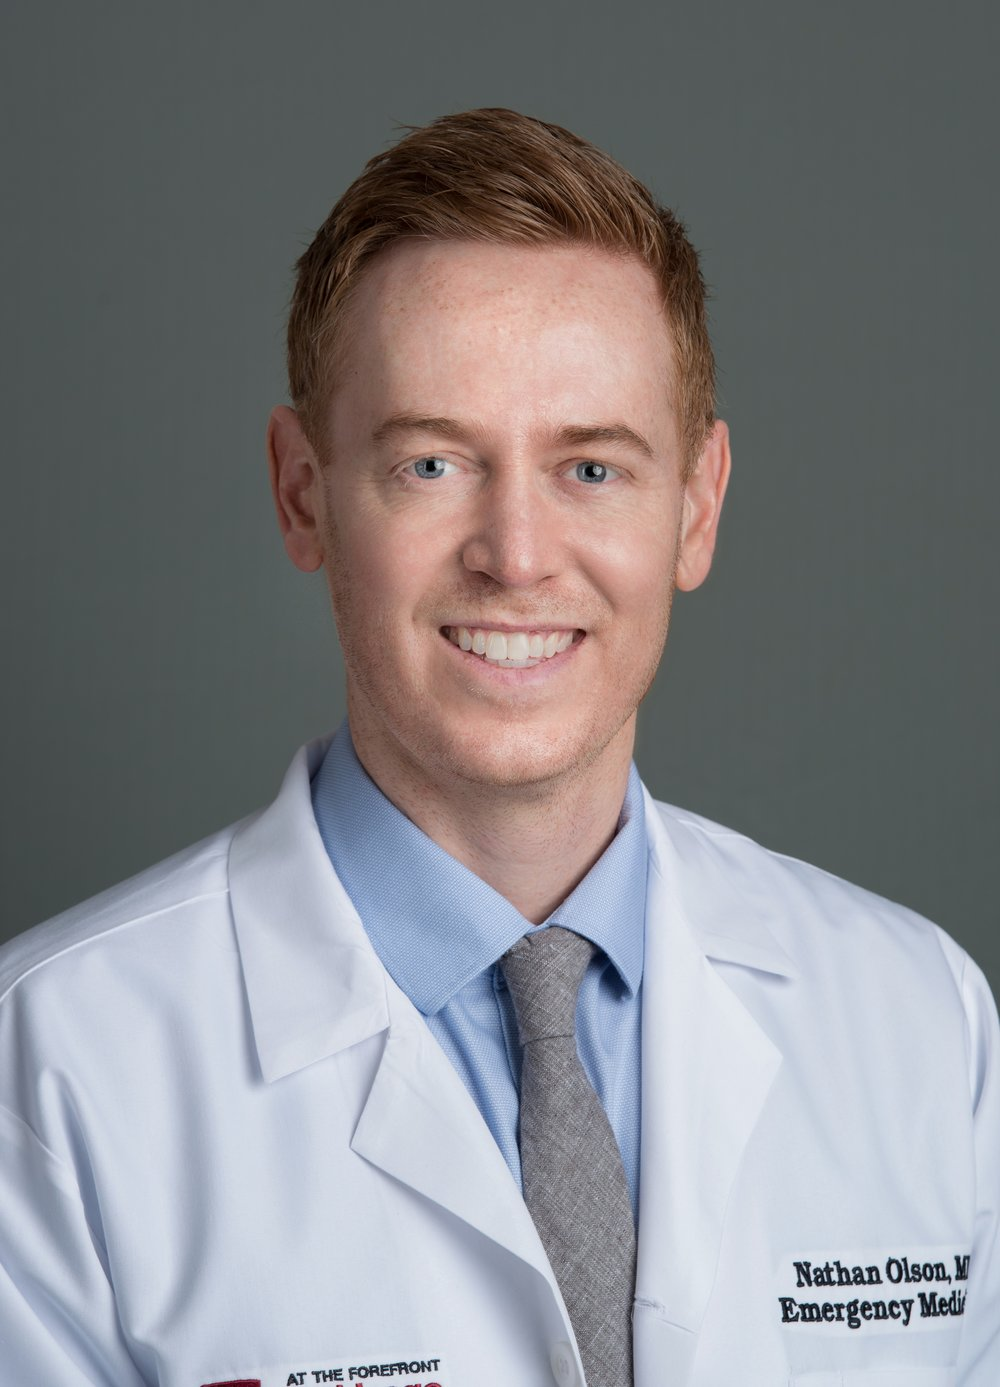 - Nathan Olson, MD, MAEdAssistant Professor of MedicineDepartment of Emergency MedicineUniversity of Chicago